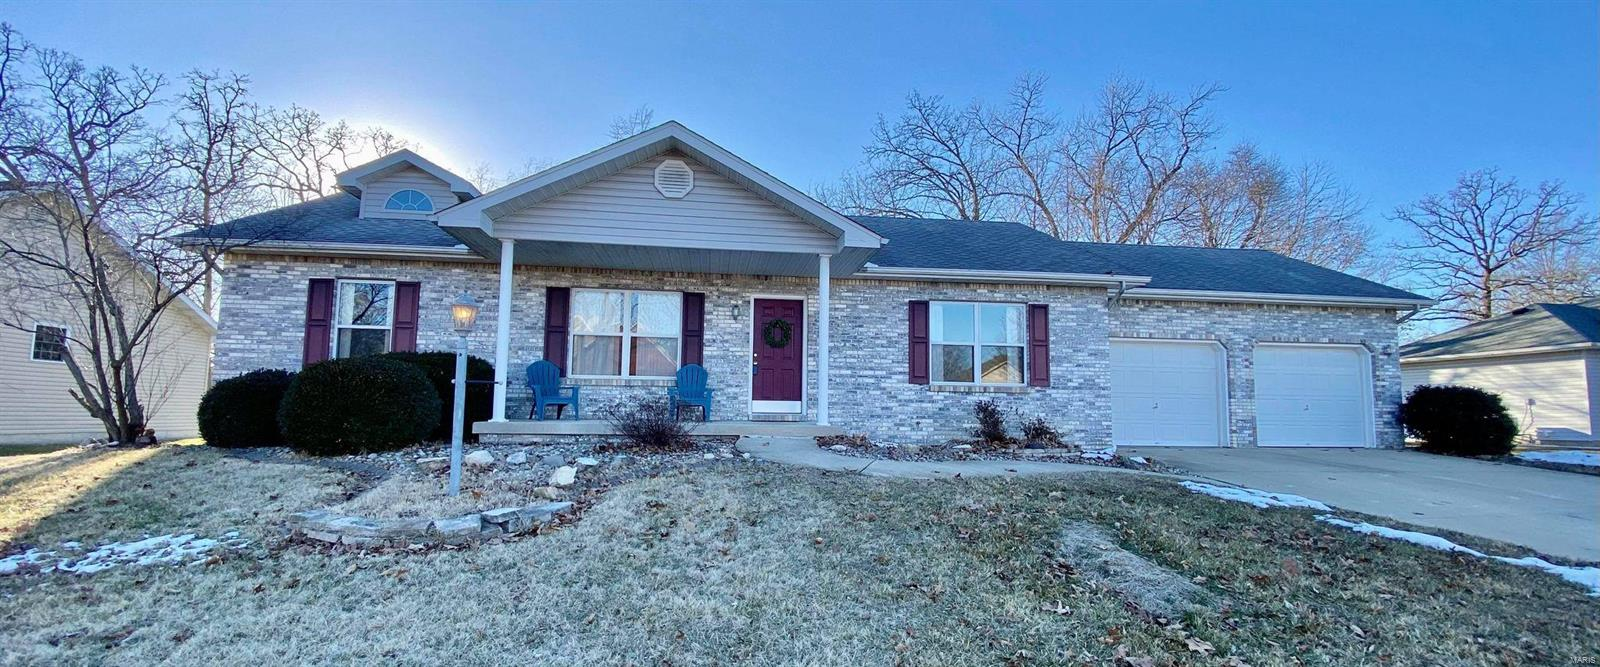 212 Lakewood Drive Property Photo - Brighton, IL real estate listing